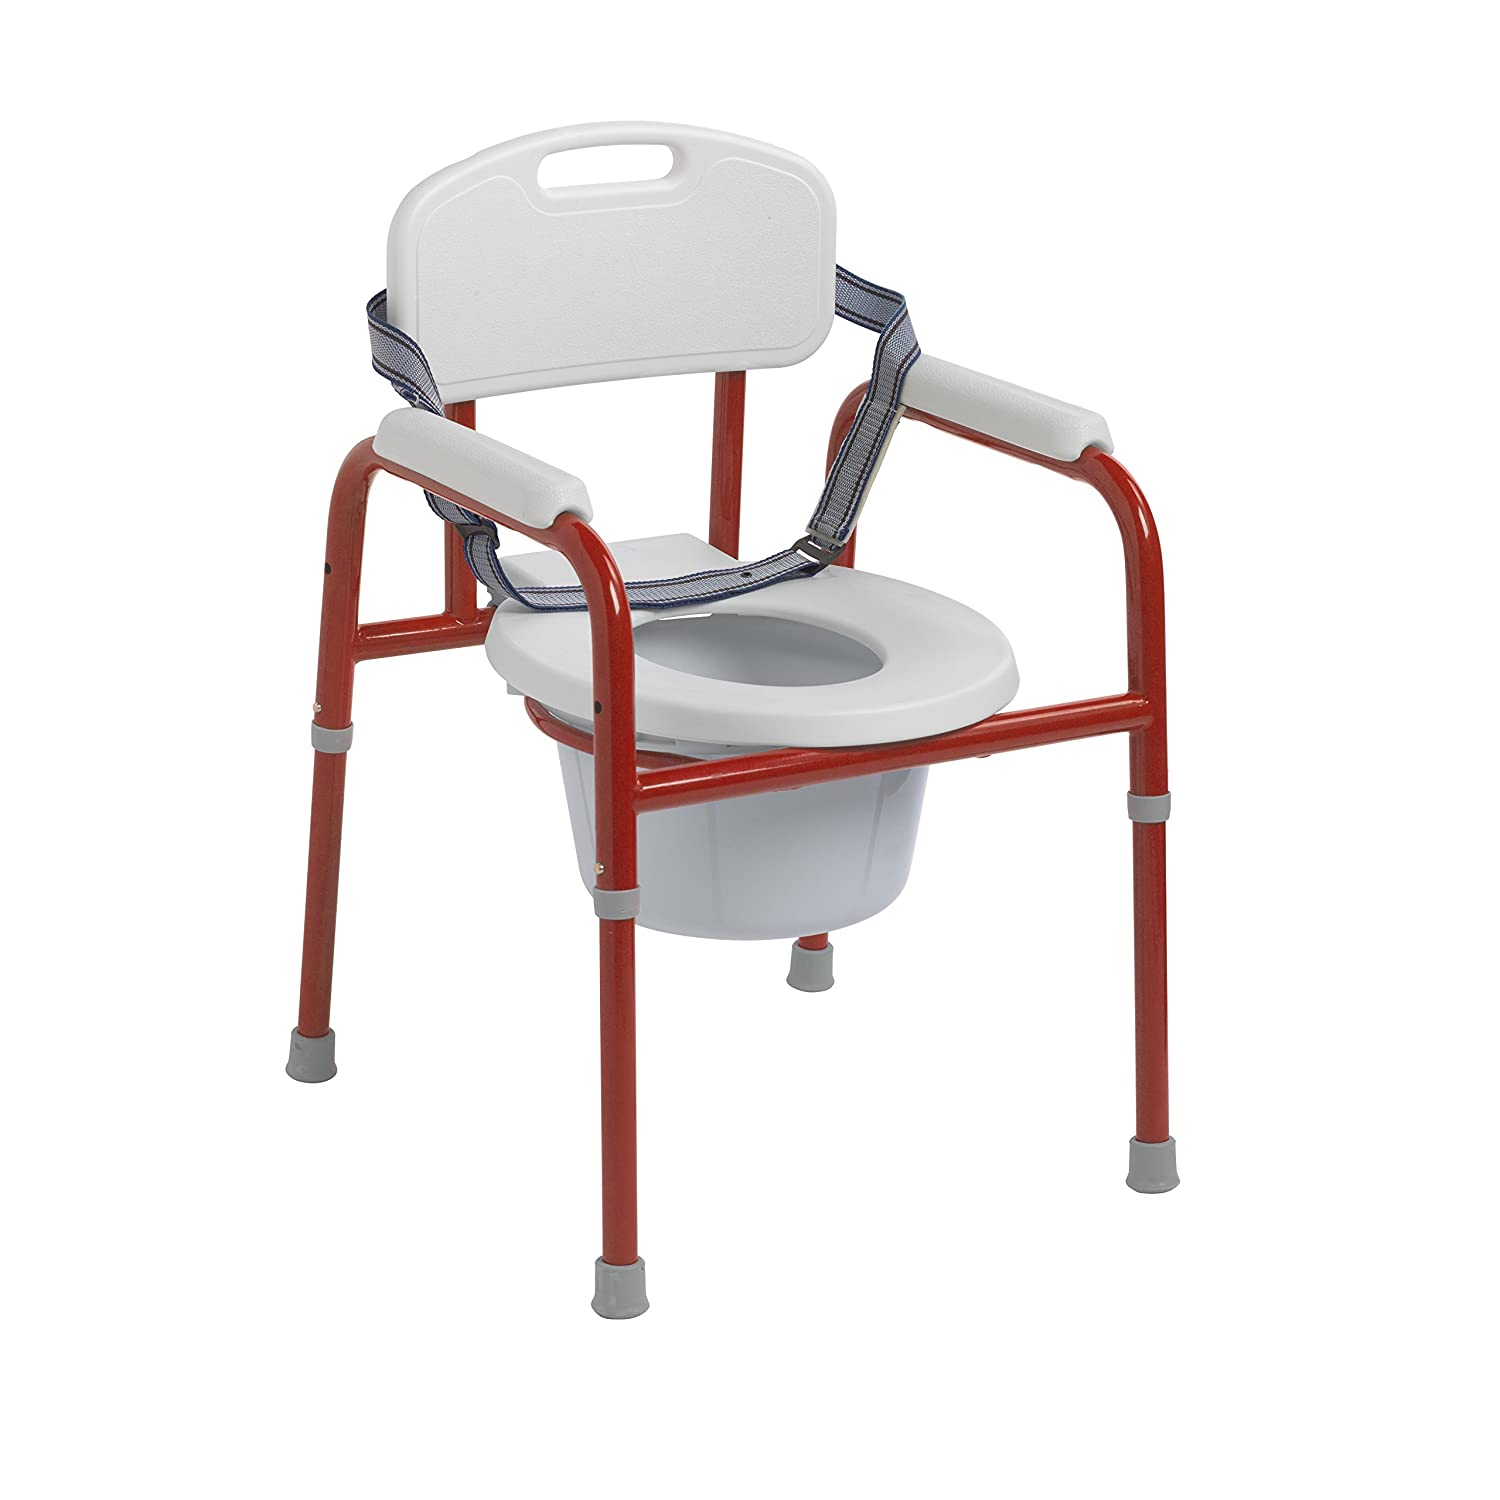 Wenzelite Drive Medical Pinniped Pediatric Commode, Blue PC 1000 BL